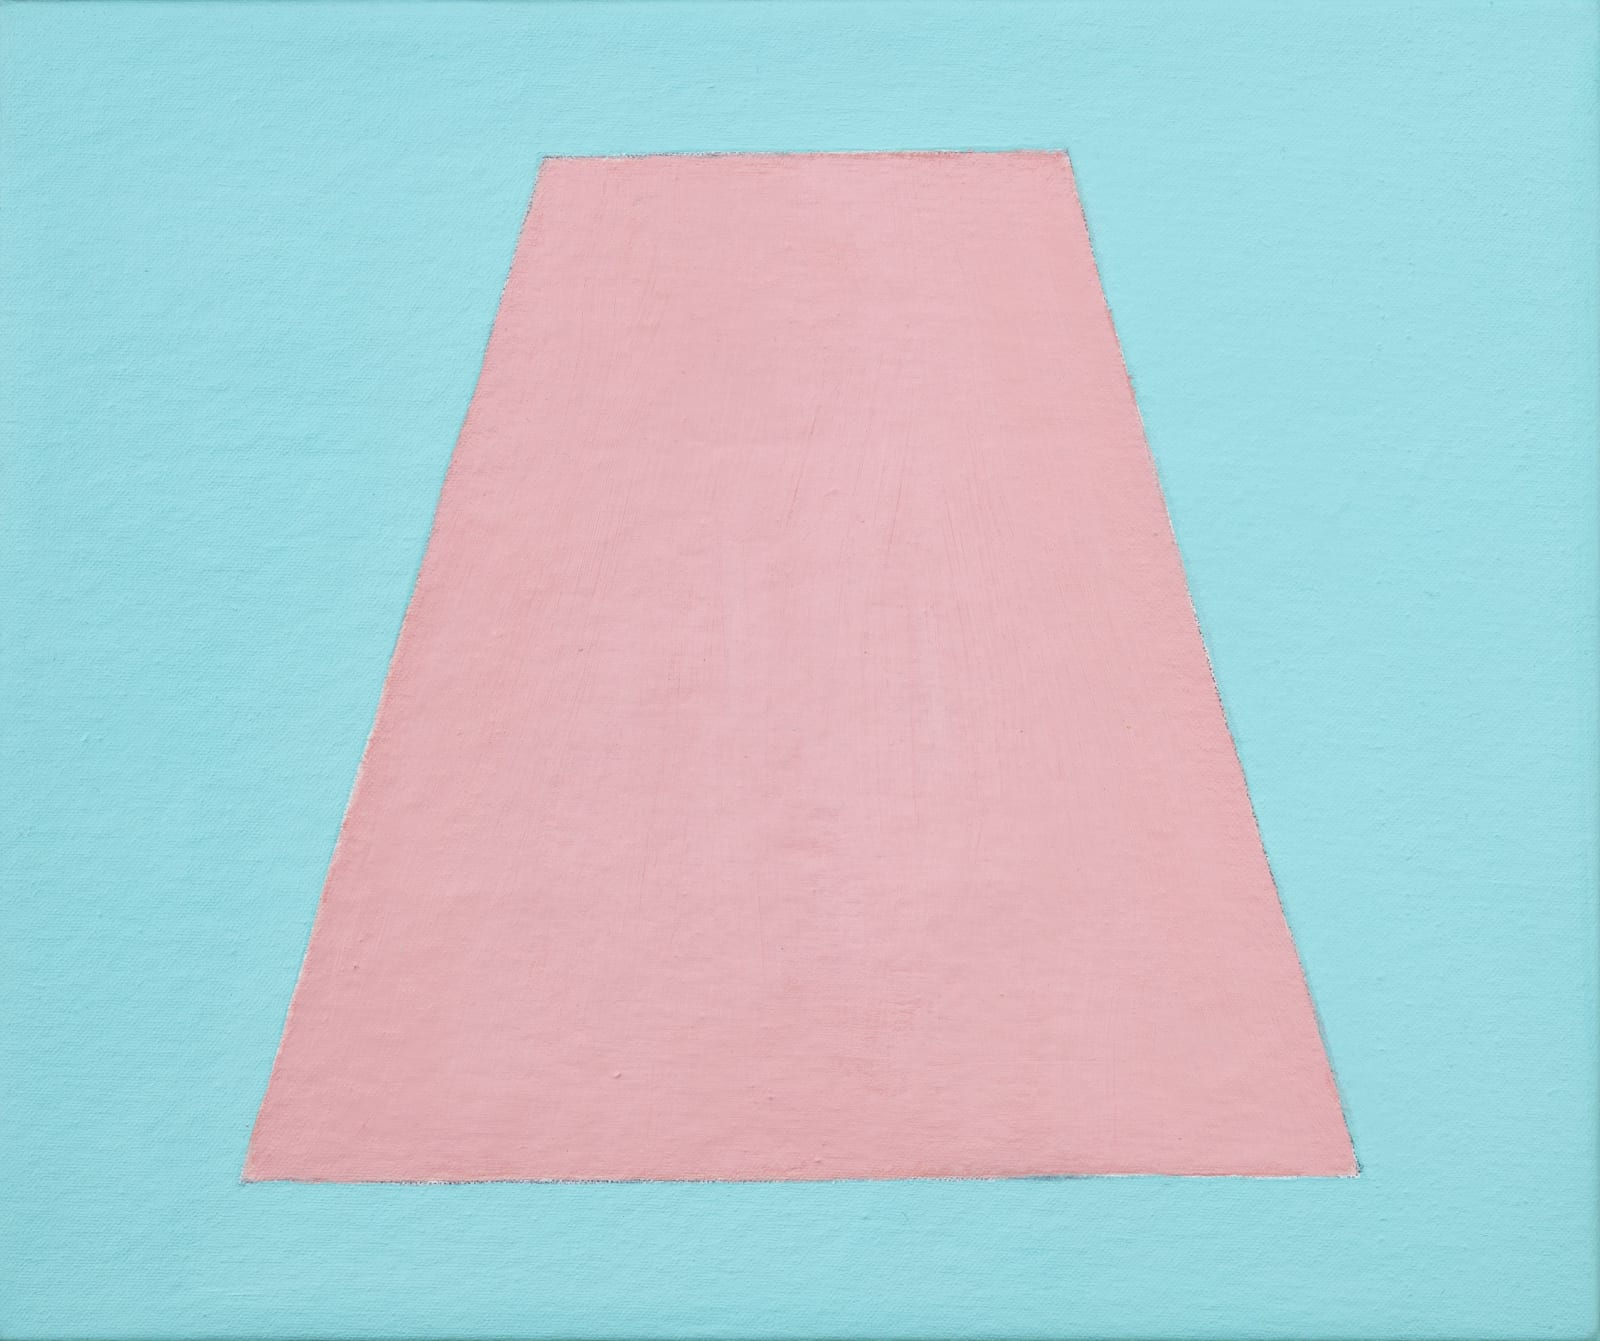 Julie Umerle, Unfolded Polygon, 2019